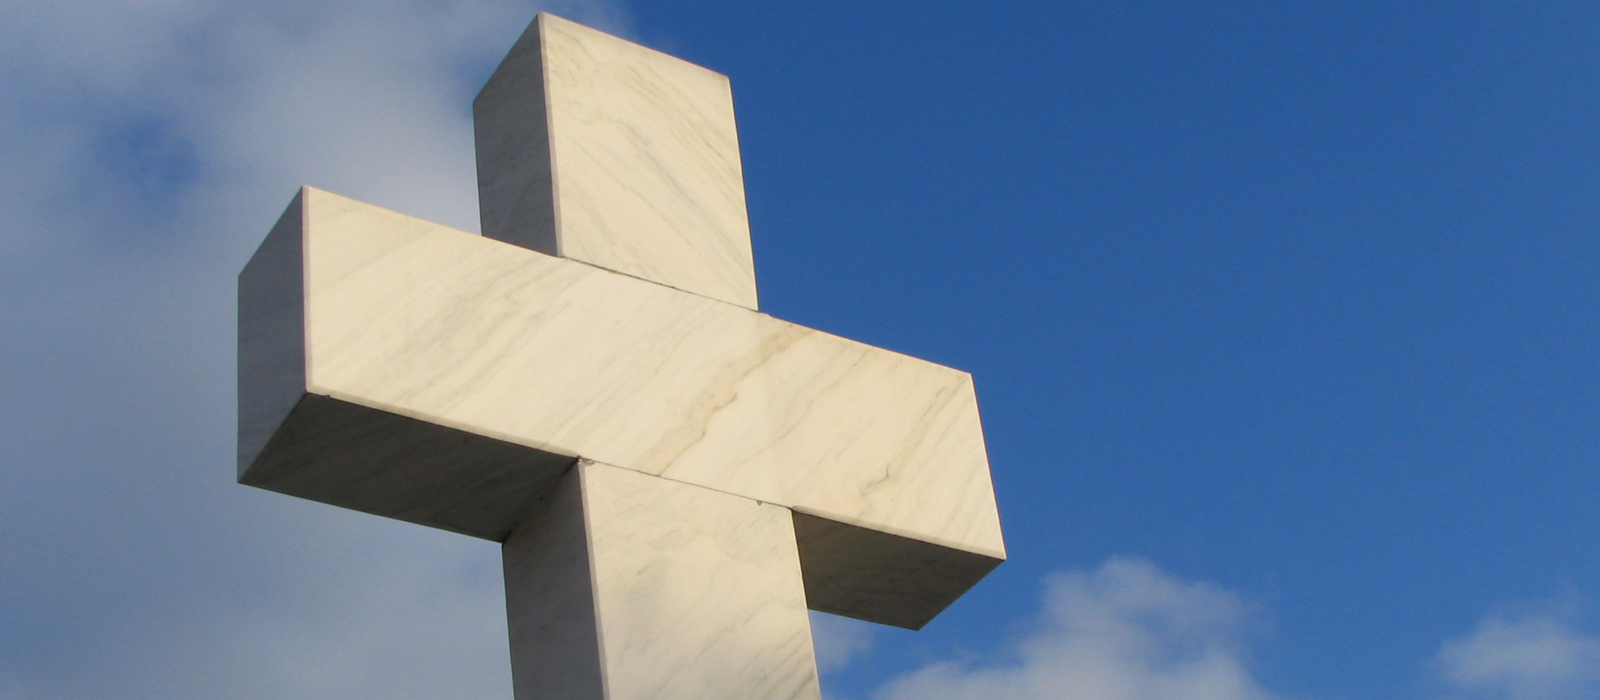 Large cross monument/statue erected outside.